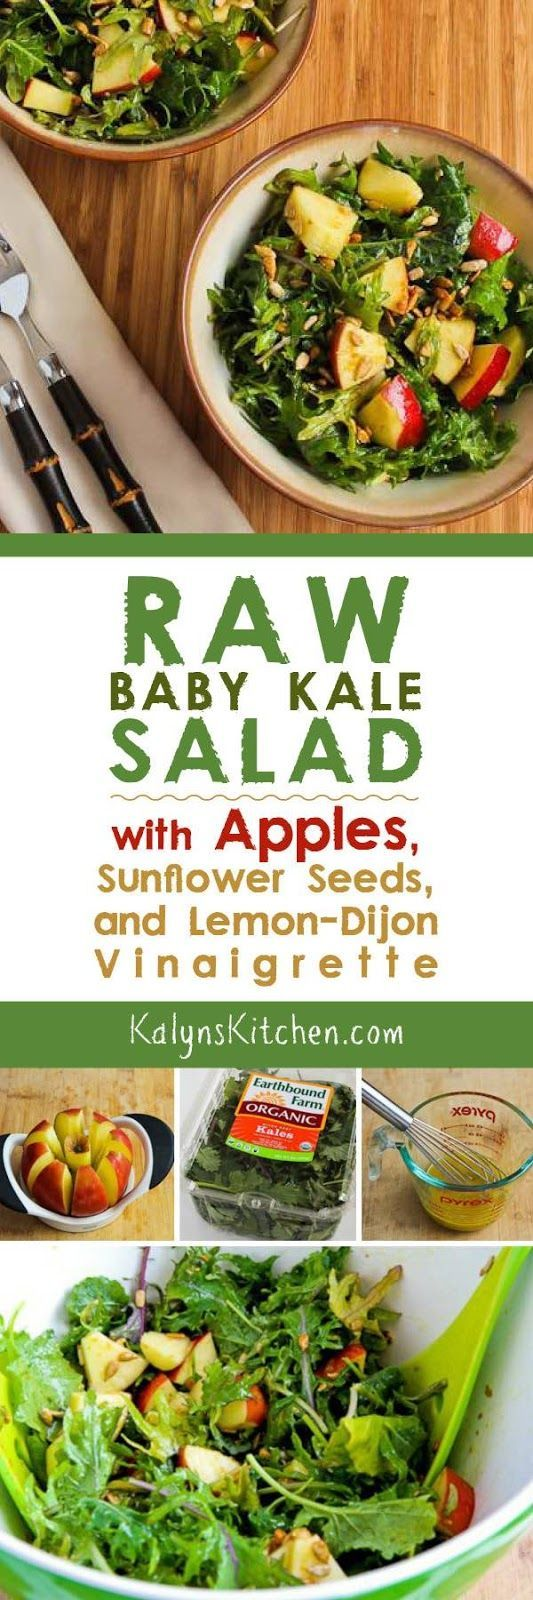 ... Kale Salad With Apples, Sunflower Seeds, And Lemon-Dijon Vinaigrette